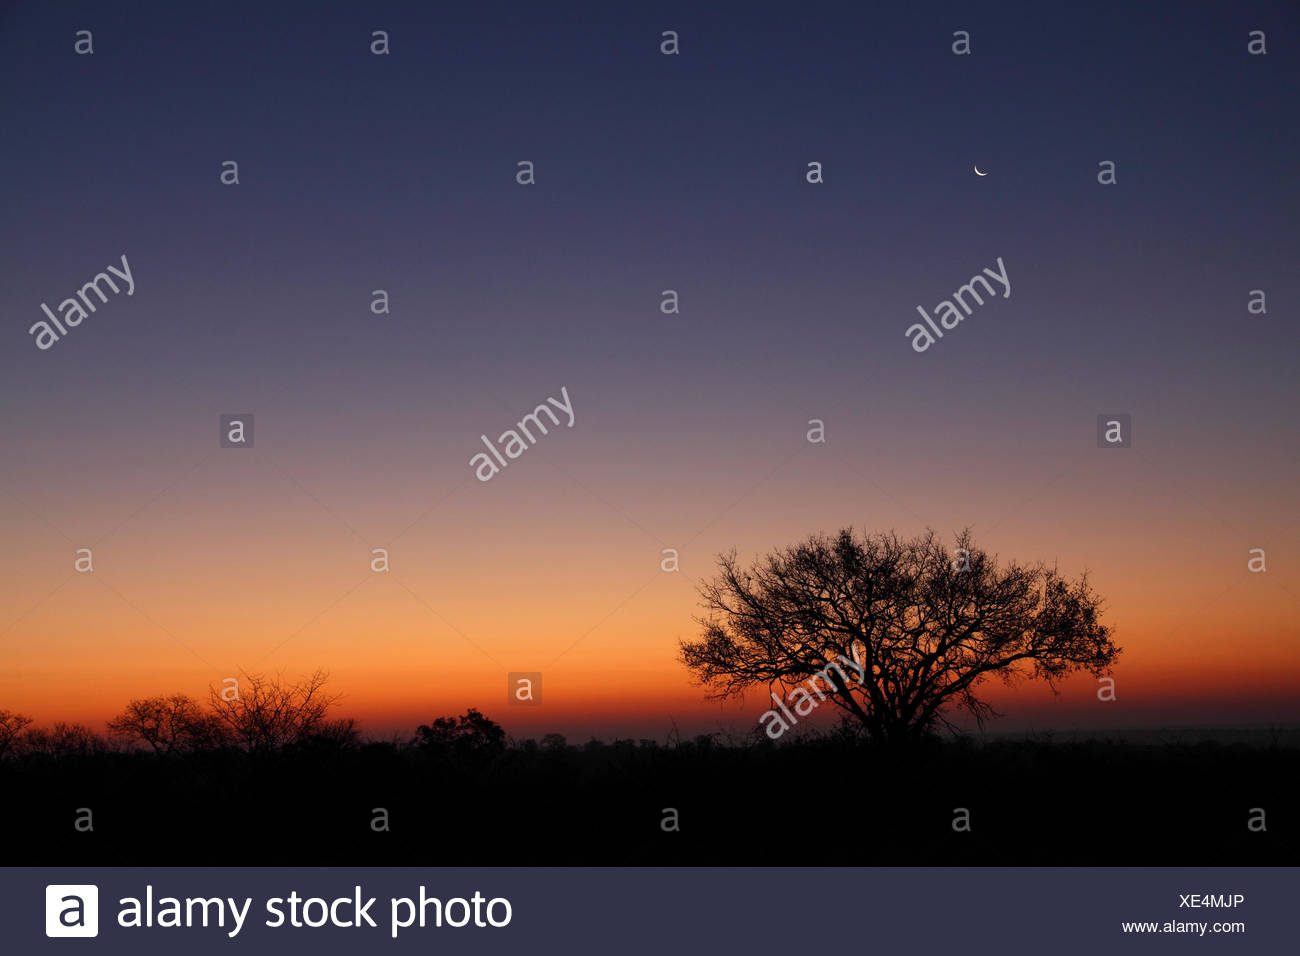 umbrella thorn and half moon some minutes before sunrise, South Africa, Kruger National Park - Stock Image